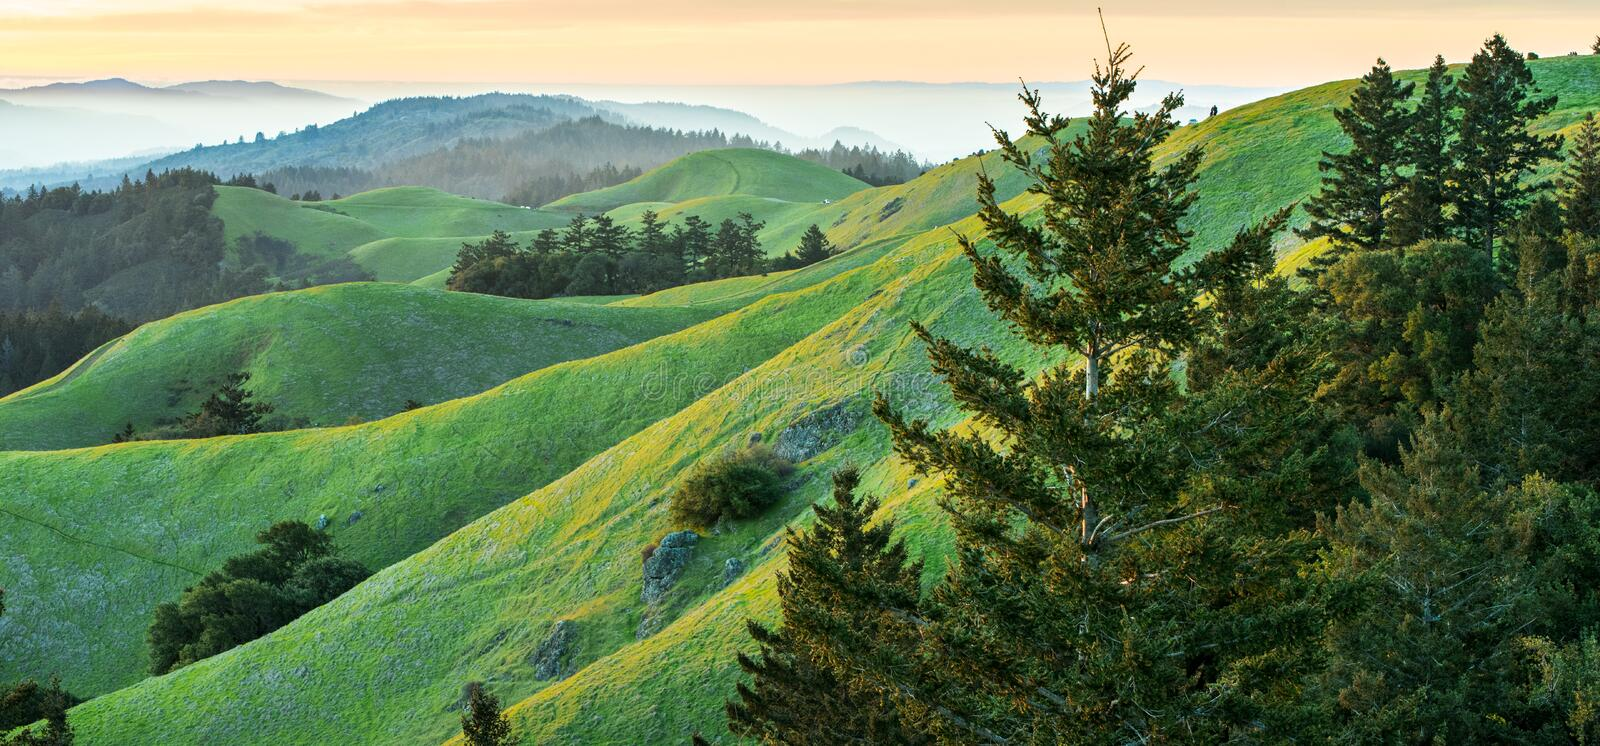 Panorama of rolling green and yellow hills with fog in background. Rolling saturated green hills with fog and sunset in background. Pine trees in foreground stock image